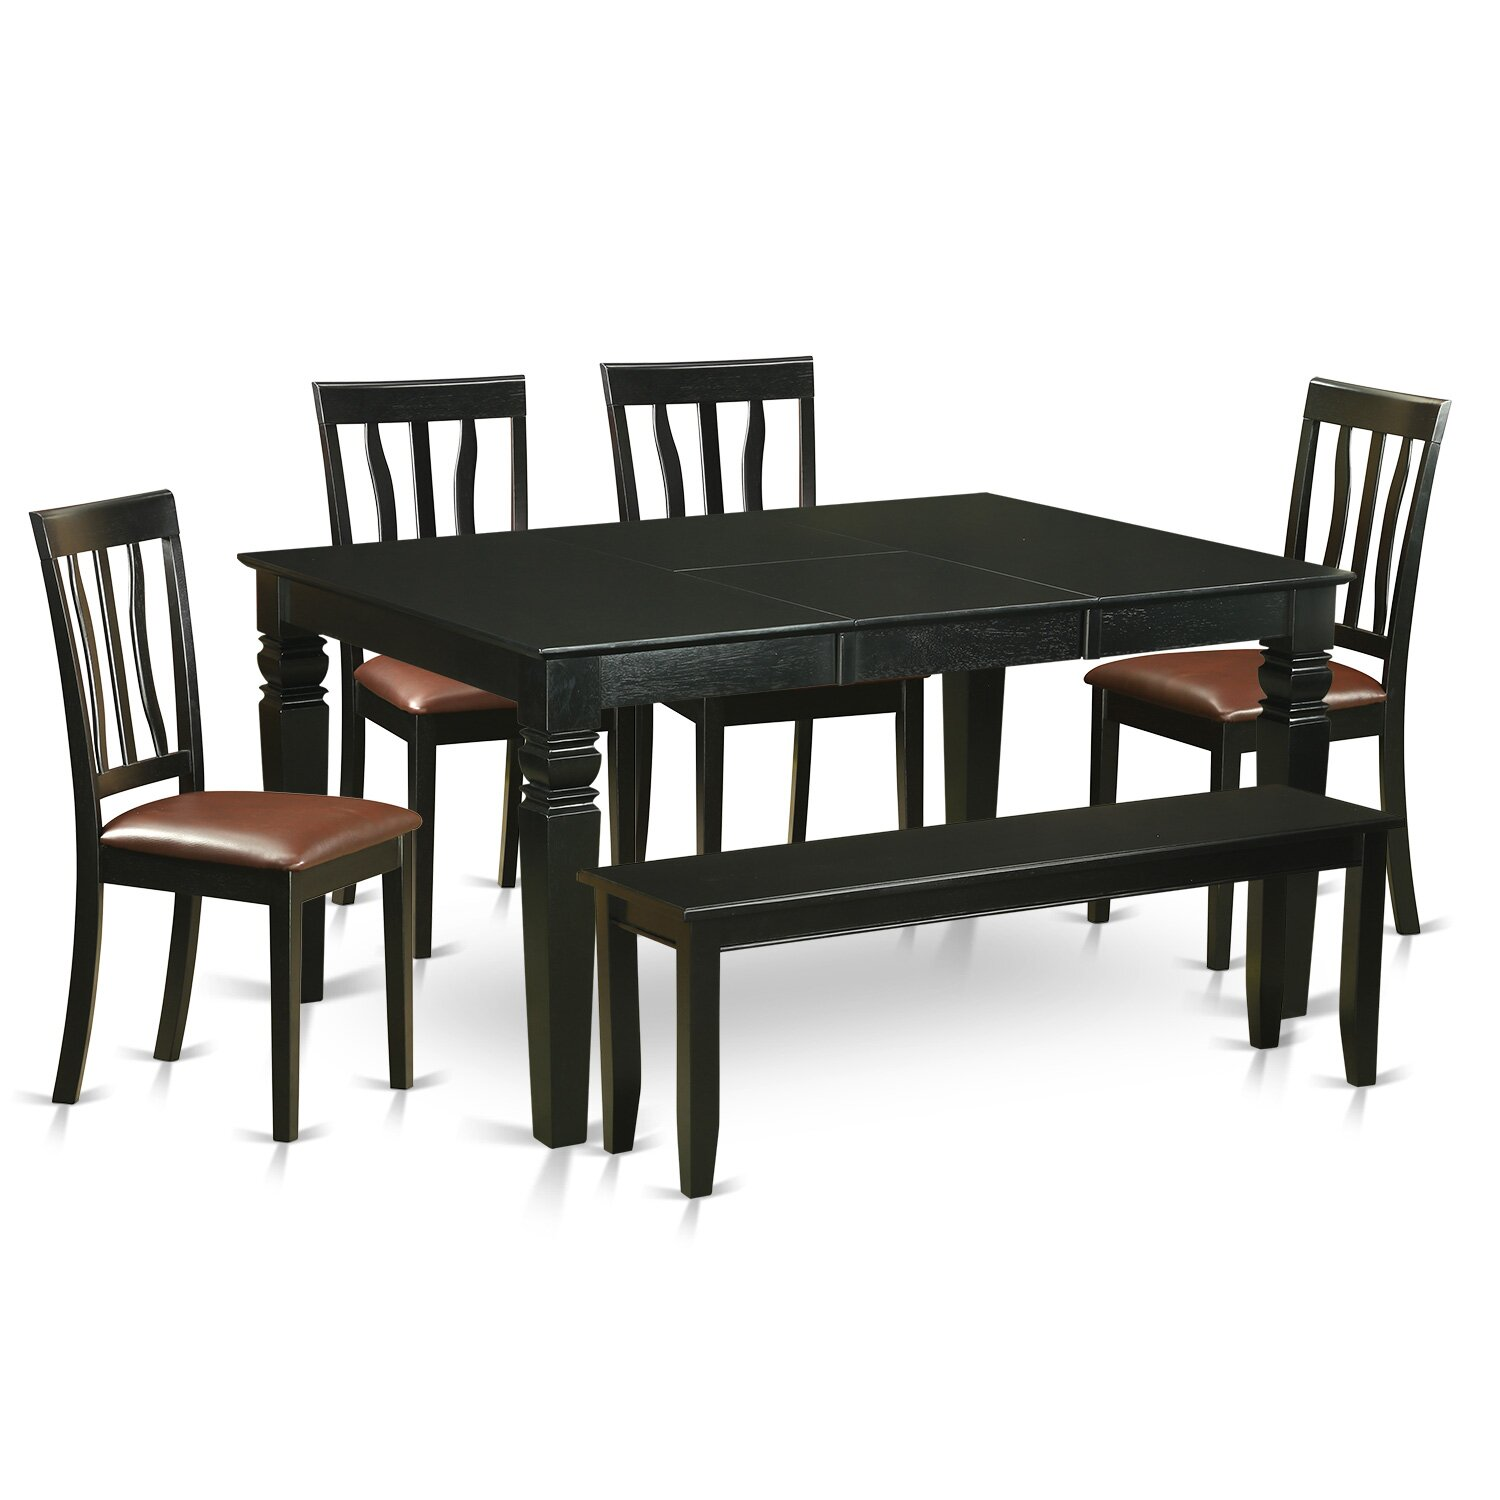 Wooden importers weston 6 piece dining set wayfair for Kitchenette sets furniture